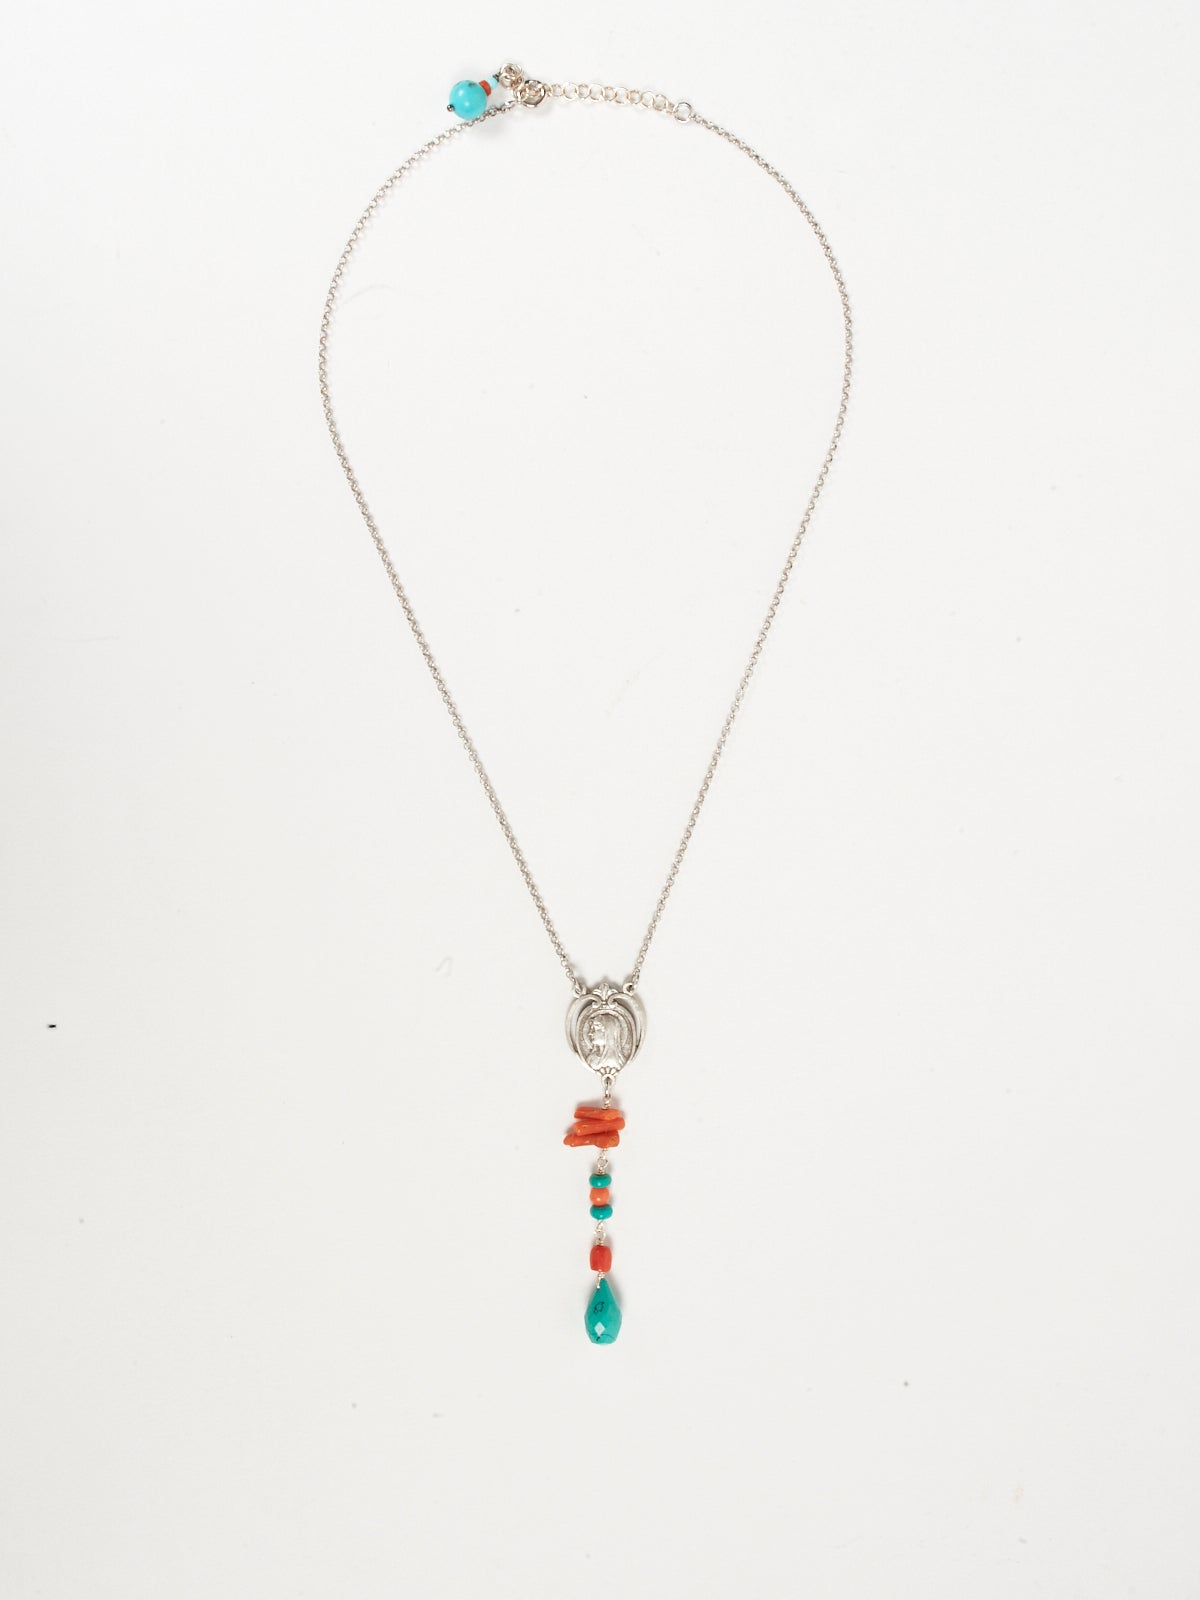 SILVER NECKLACE - CORAL AND TURQUOISE